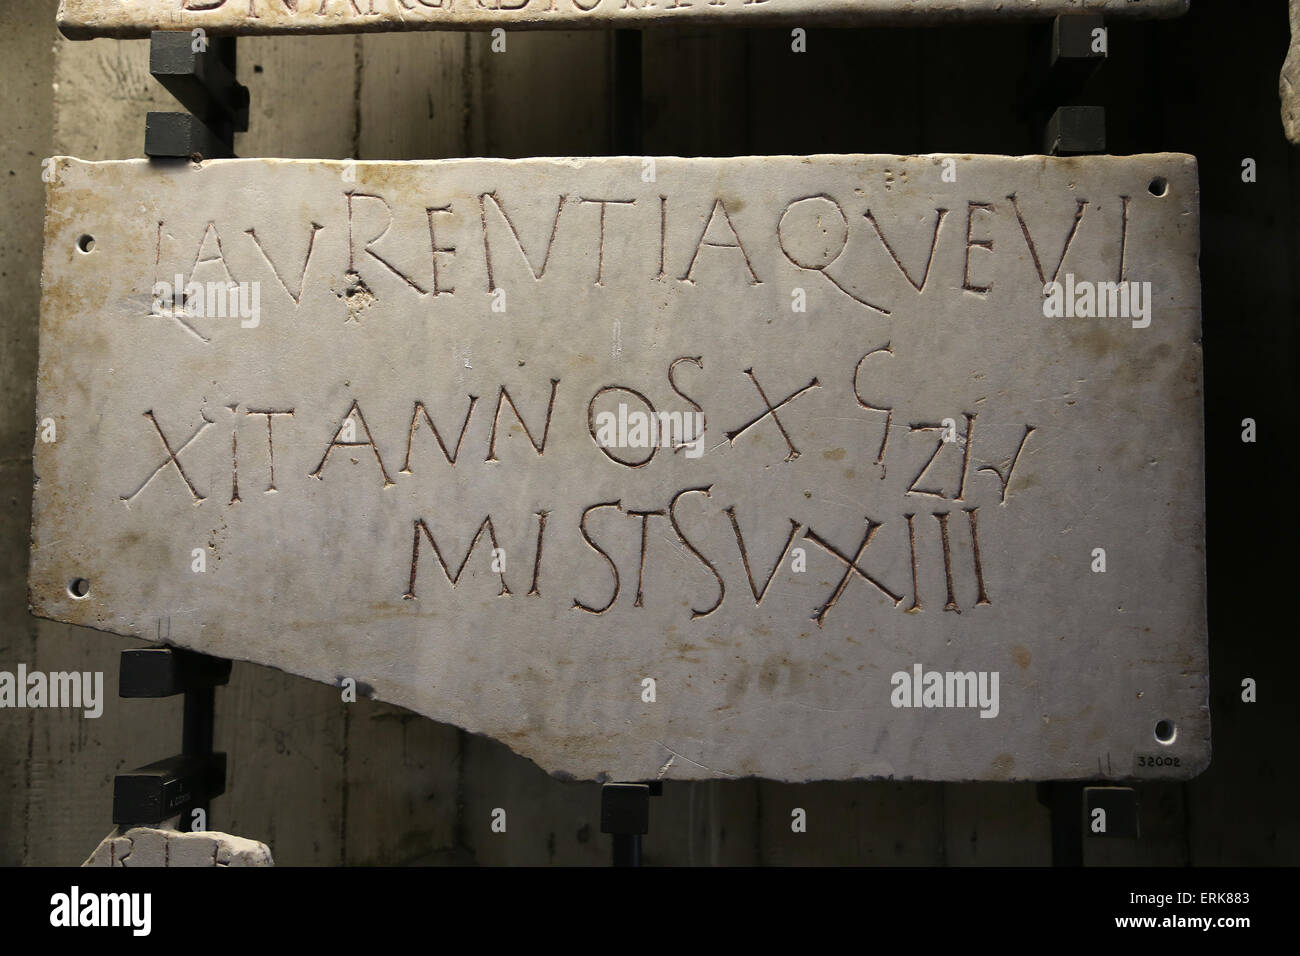 Roman tombstone. Early Christian. Latin inscription. Vatican Museums. - Stock Image